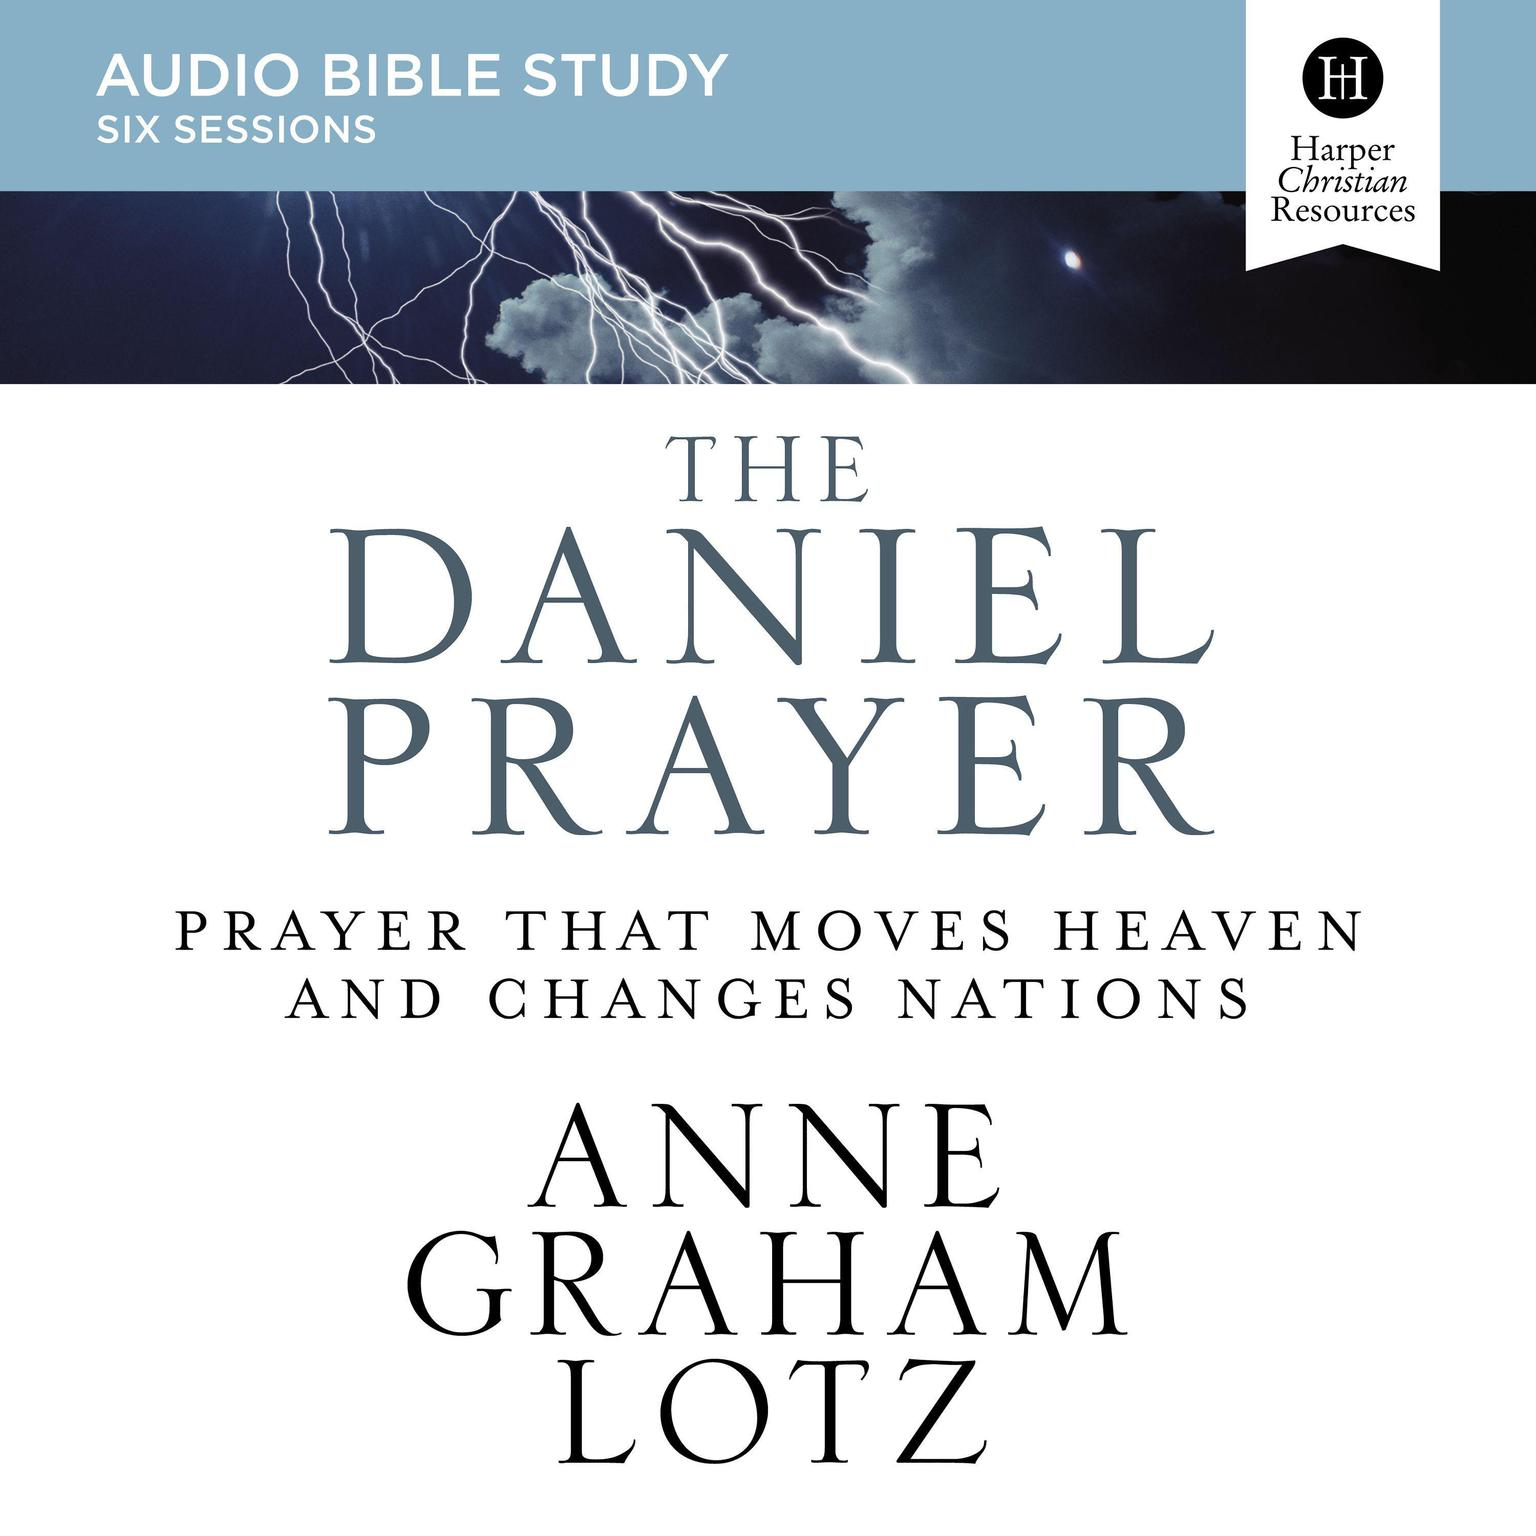 Printable The Daniel Prayer Audio Bible Study: Prayer That Moves Heaven and Changes Nations Audiobook Cover Art